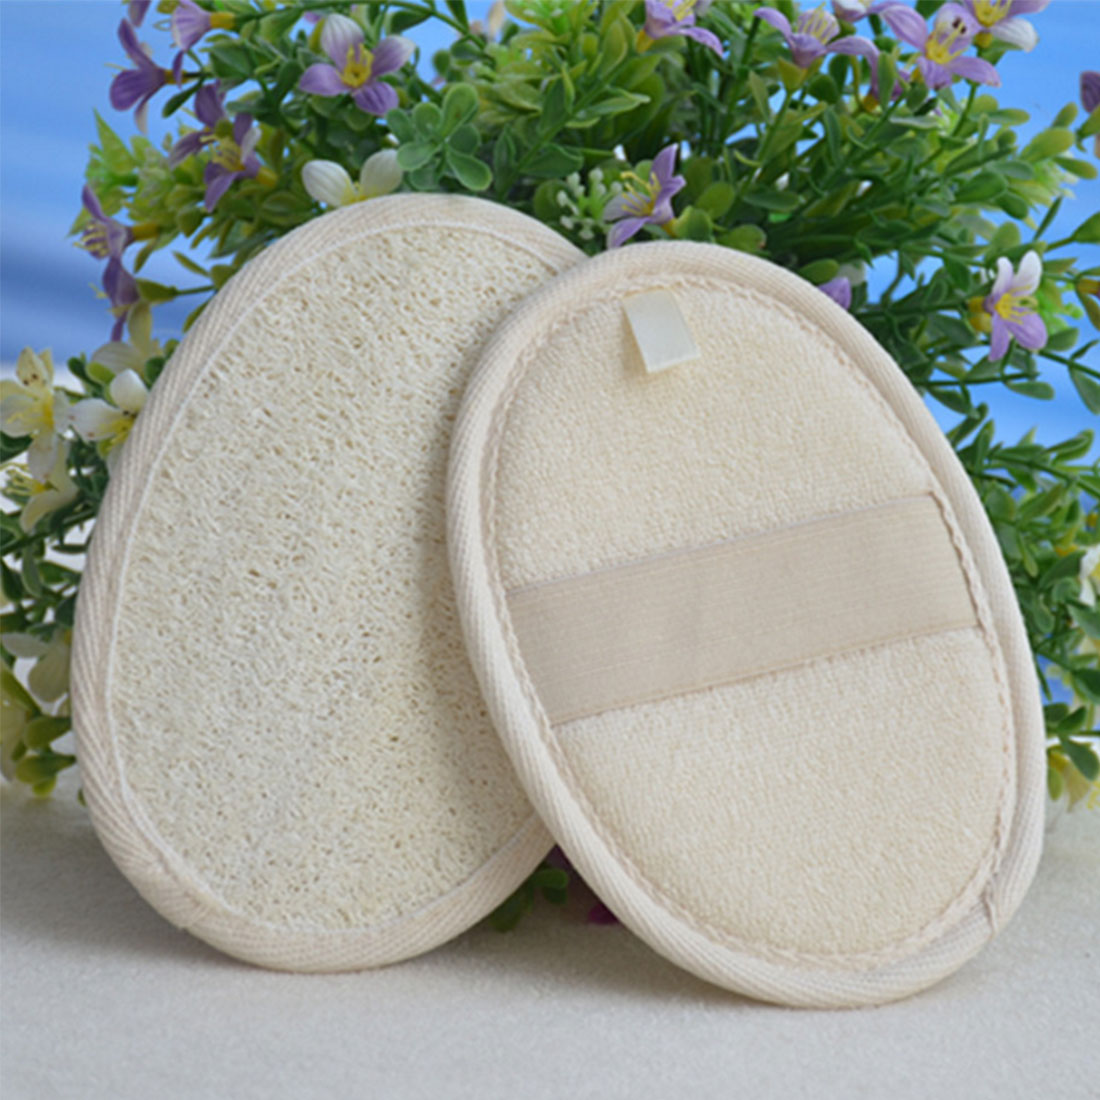 Practical Natural Loofah Bath Shower Body Washing